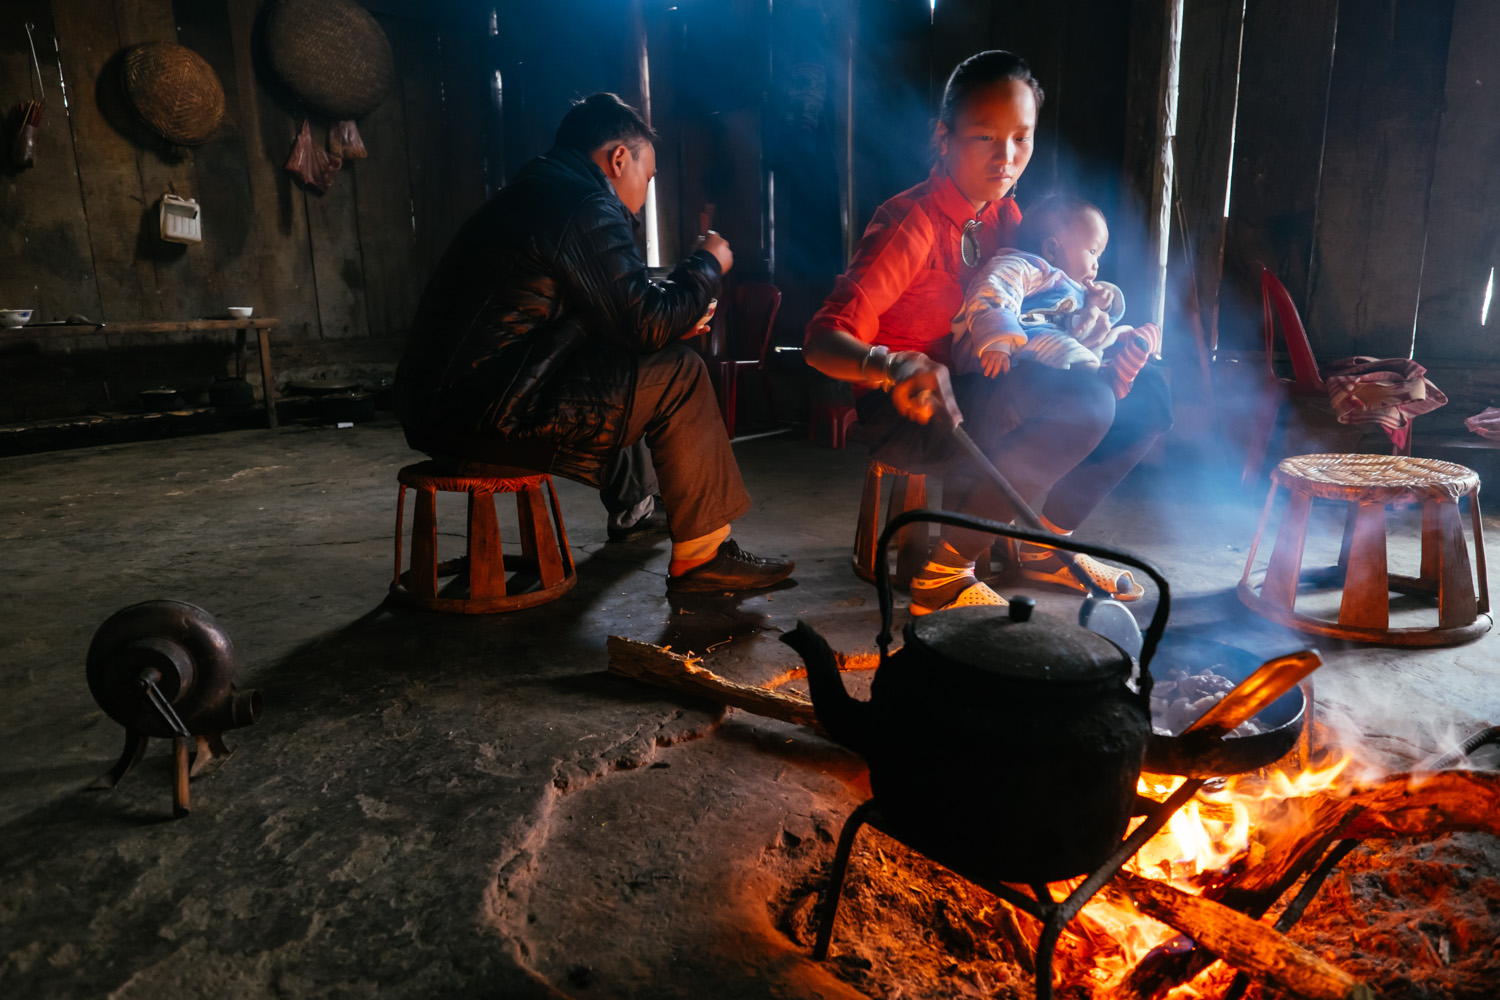 A young mom form the Hmong tribe who works as a tour guide in Sa Pa, Vietnam, cooks dinner at her home after a full day of trekking through the mountains.